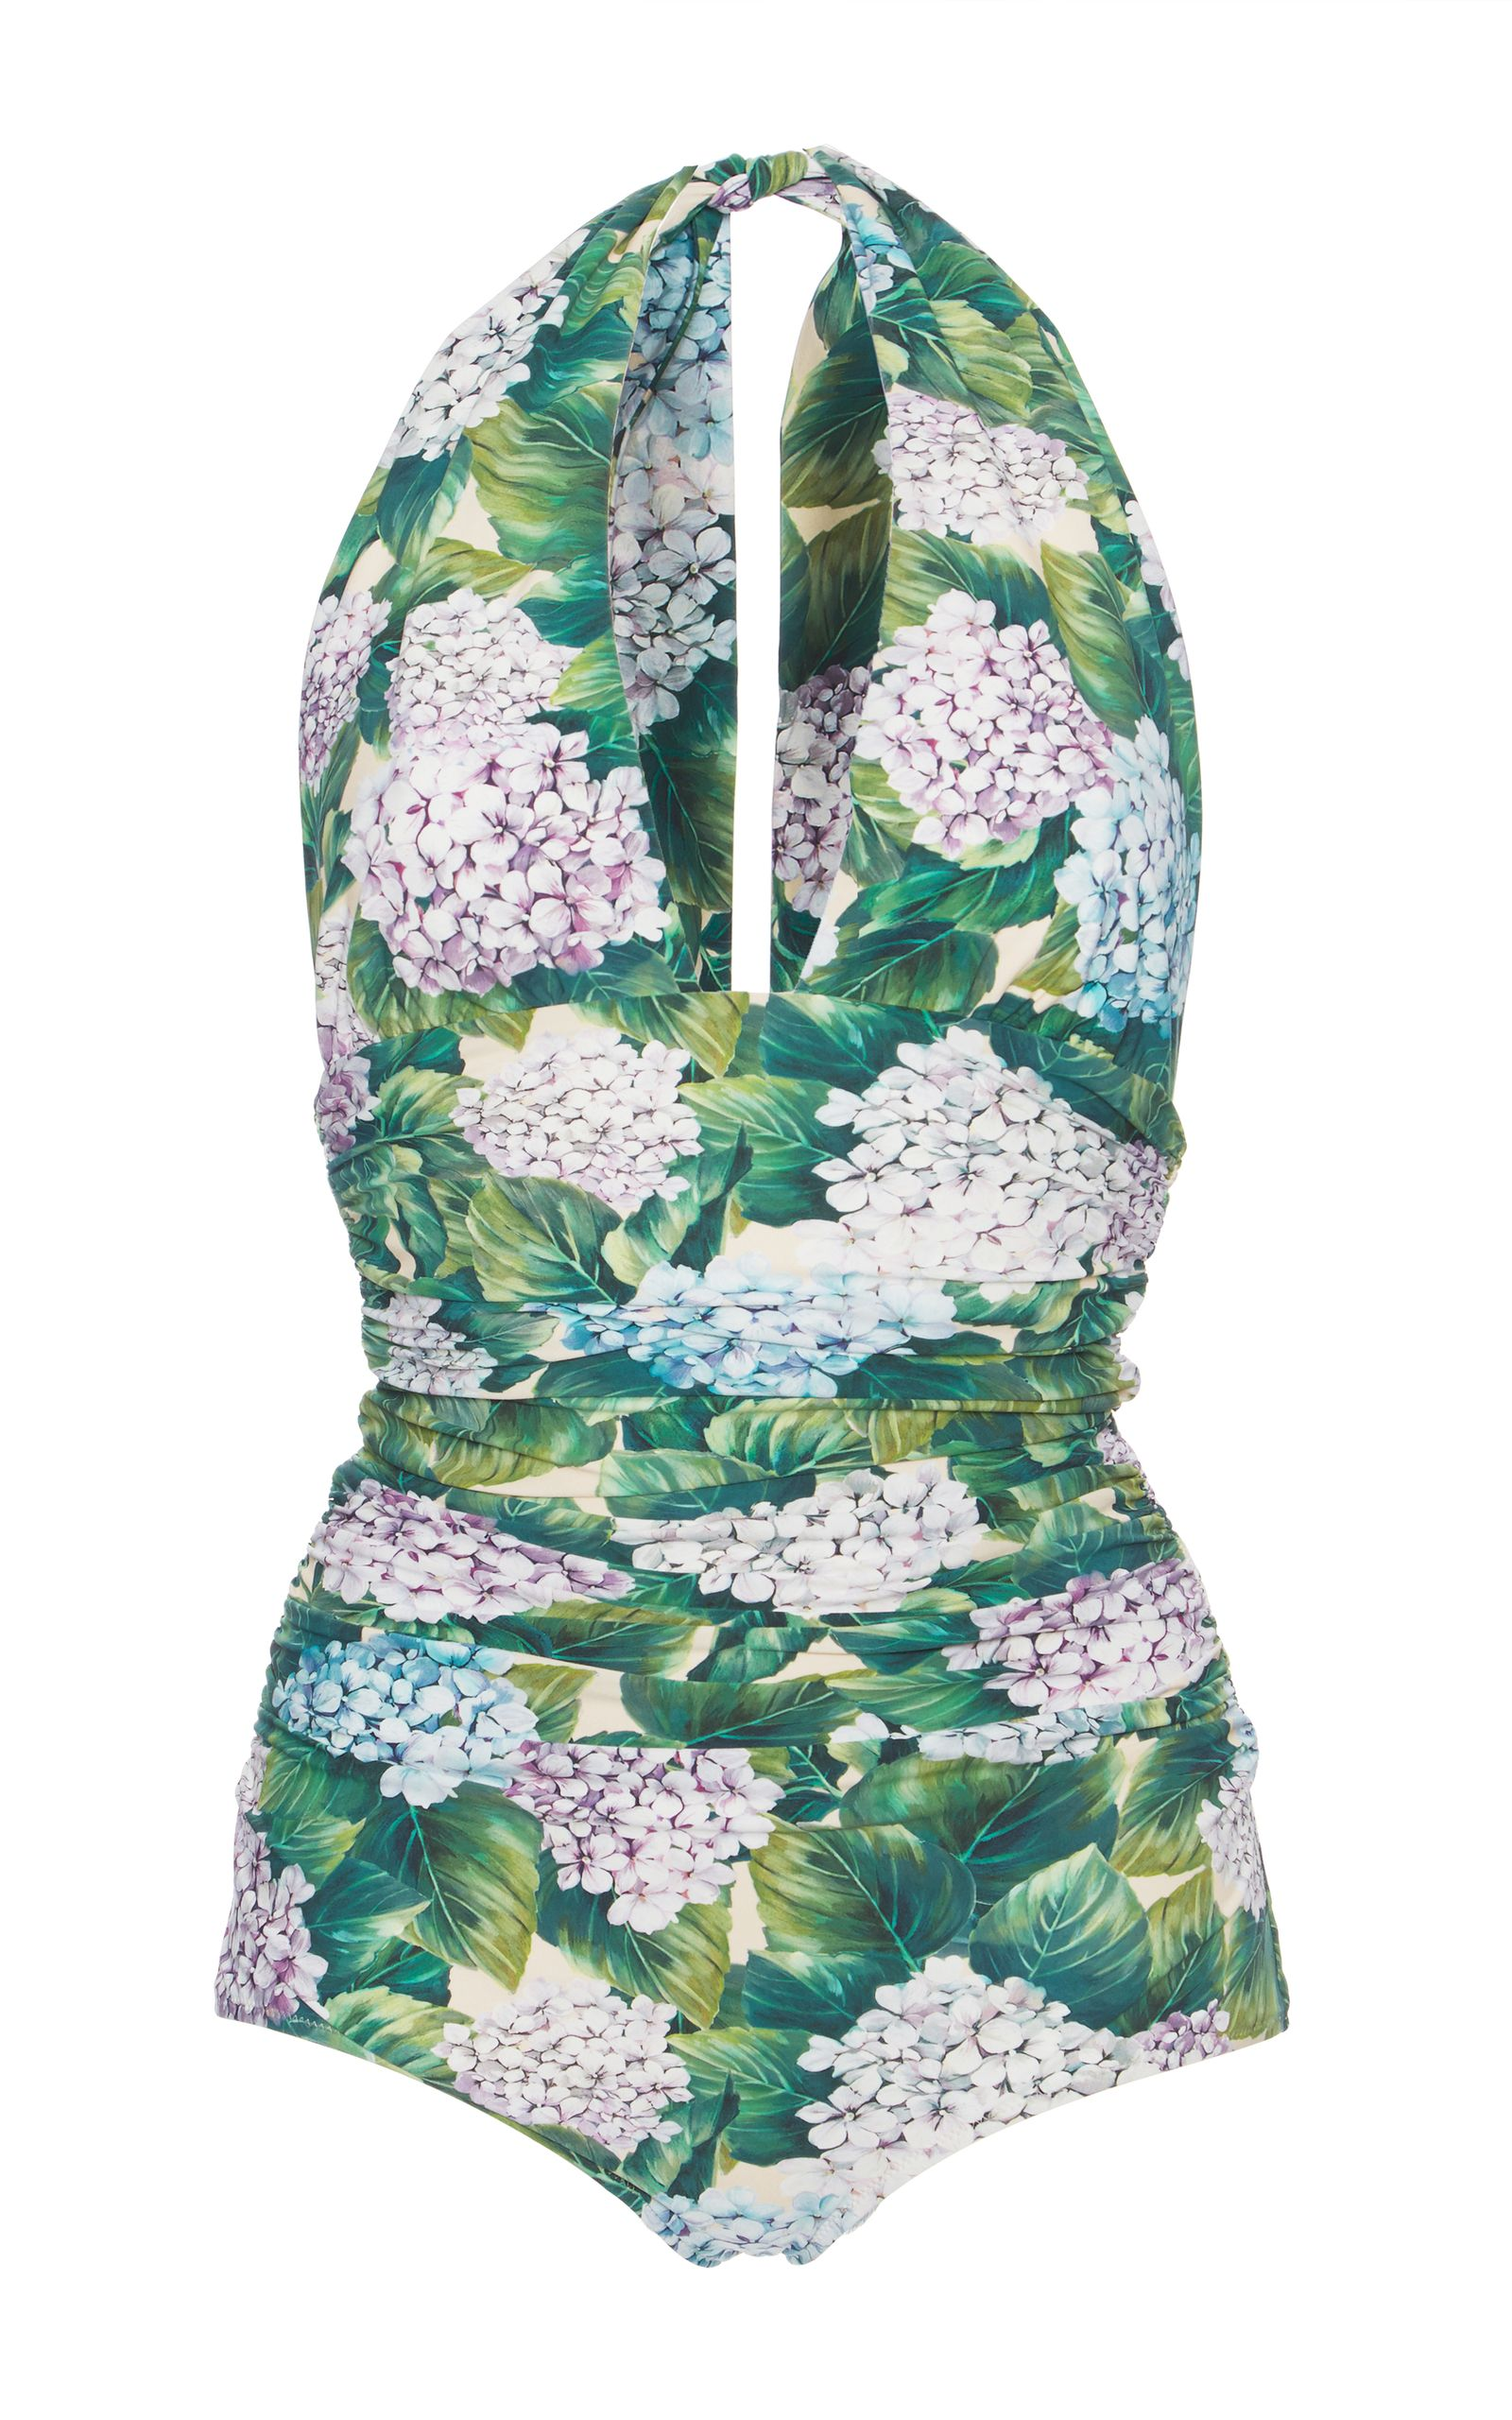 be2998190e DOLCE   GABBANA Floral-Print One-Piece Swimsuit.  dolcegabbana  cloth   swimsuit